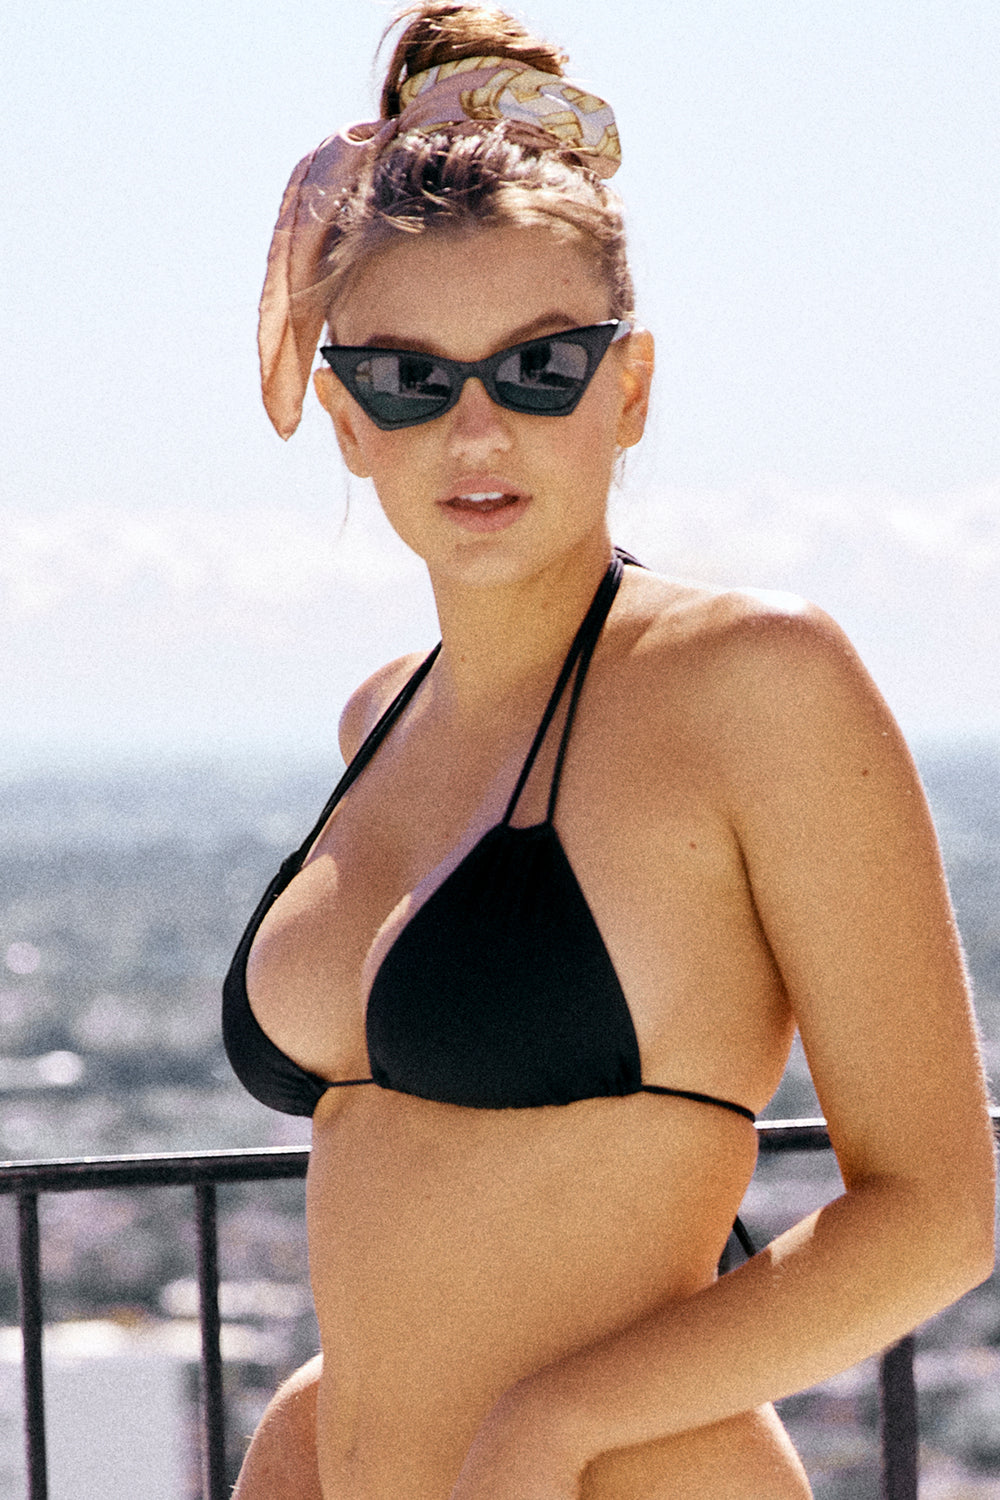 black triangle bikini top moderate coverage adjustable eco-friendly & sustainable fabric